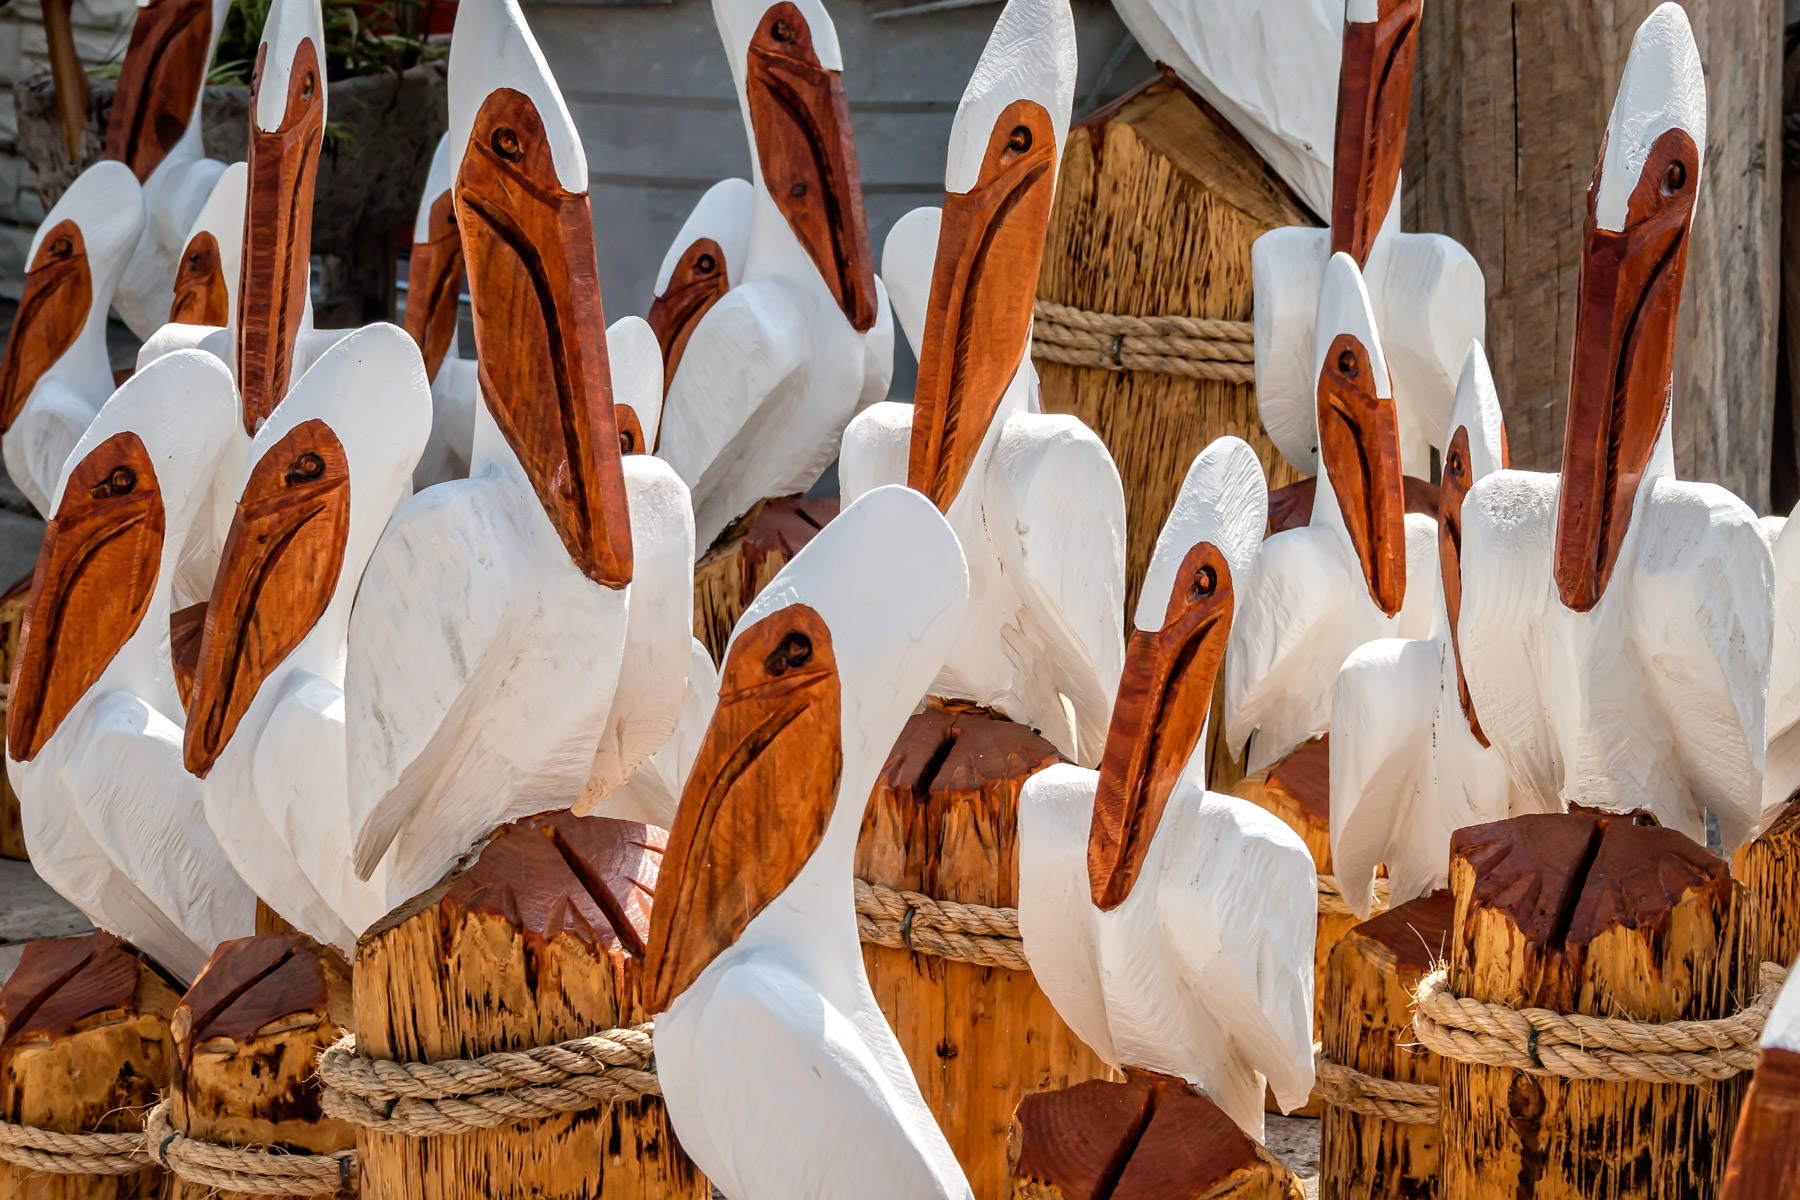 Carved wood pelicans at a souvenir/gift shop in Port Isabel, Texas.